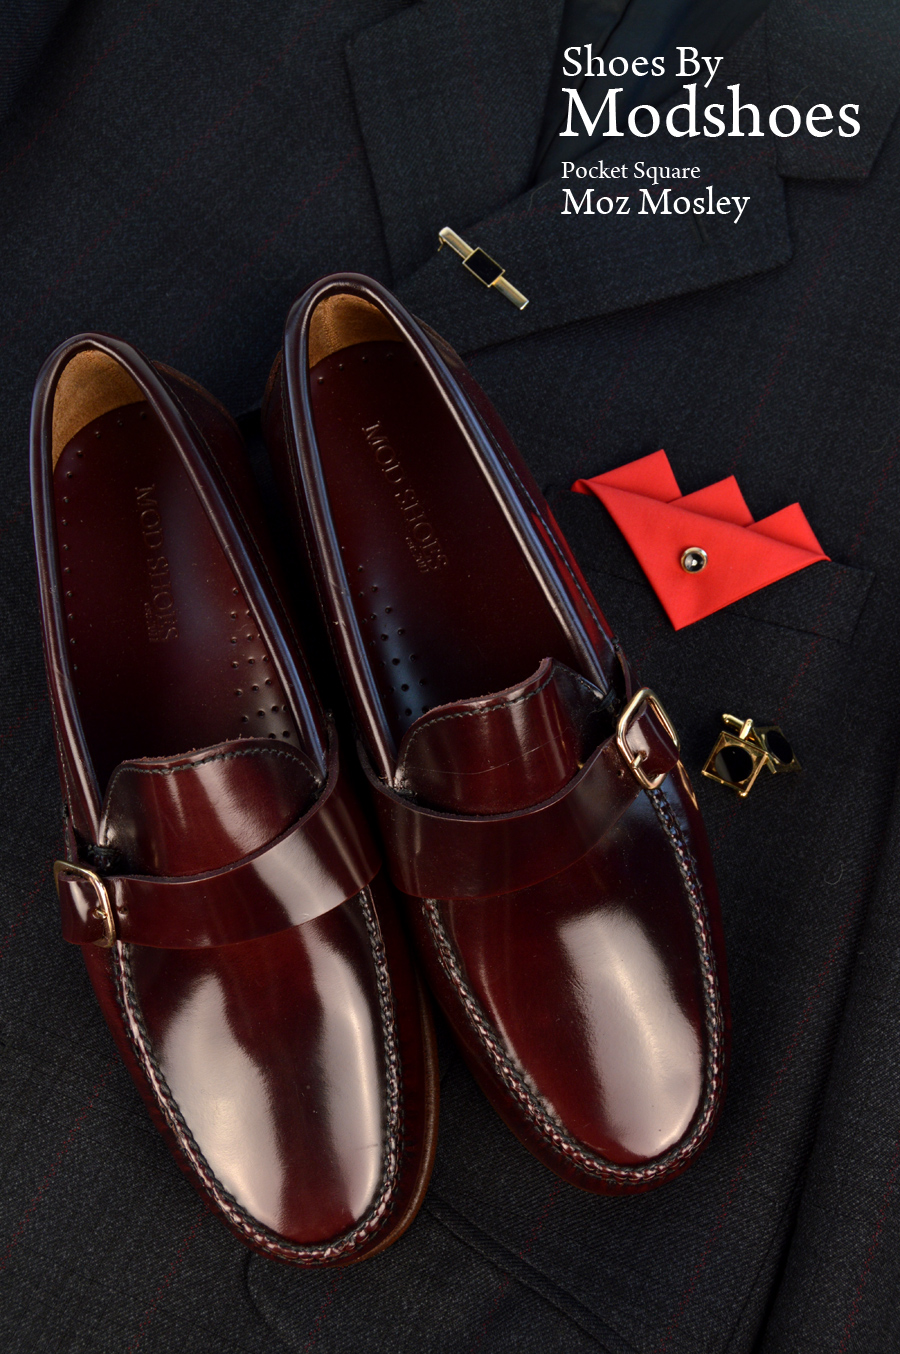 modshoes-oxblood-penny-loafers-01